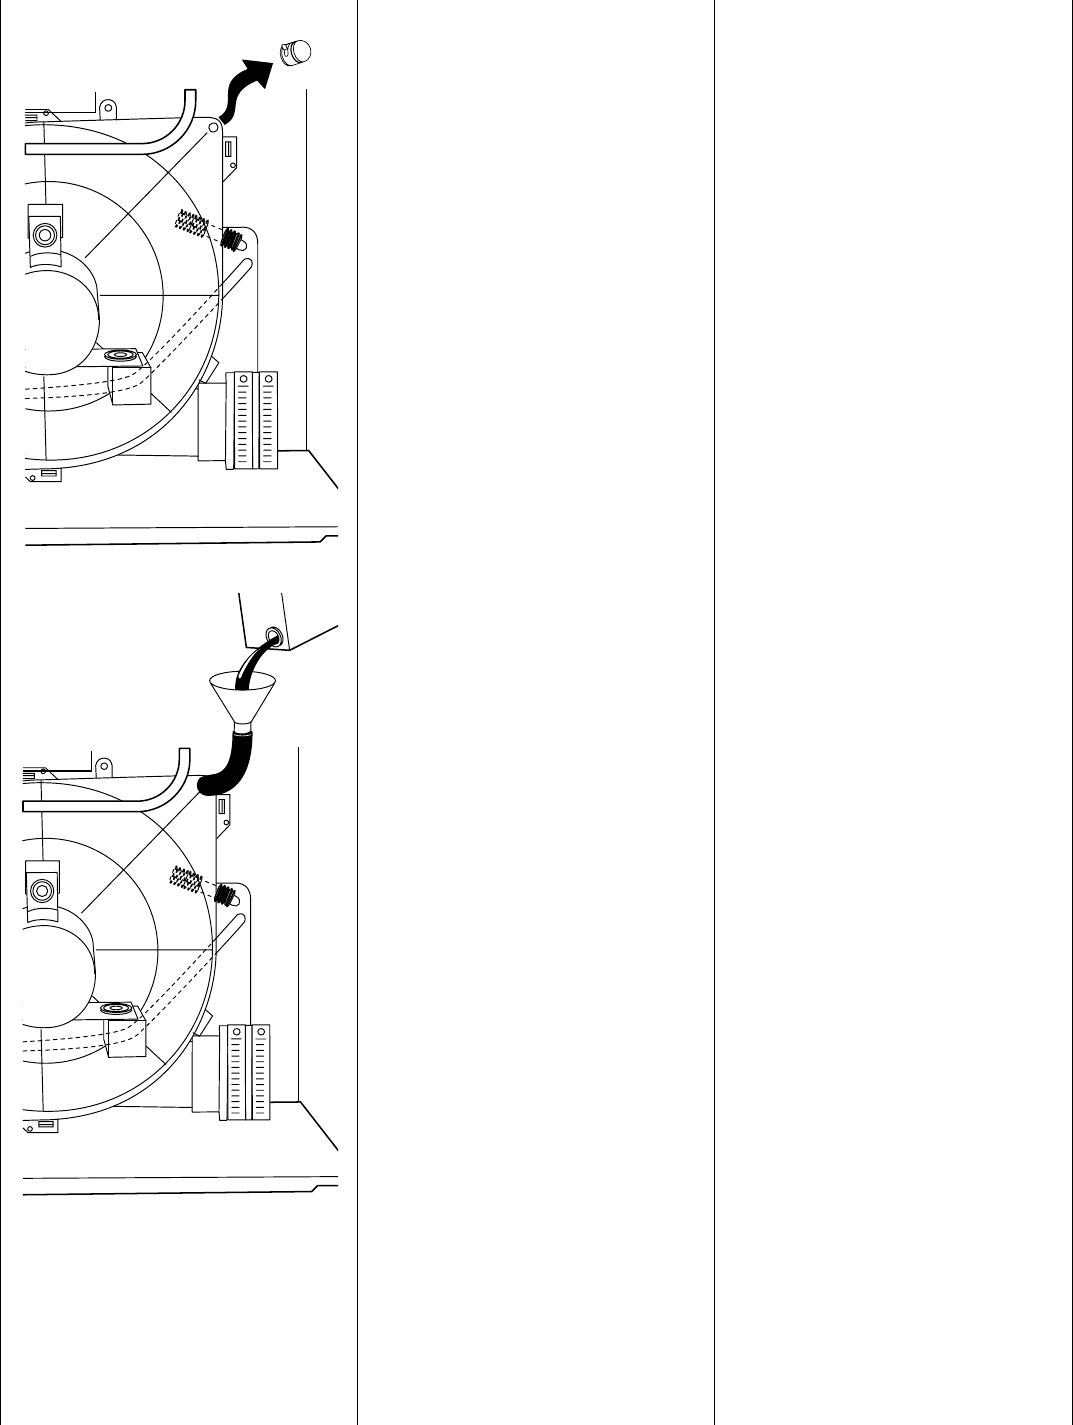 Pictures of wiring diagram for bryant furnace